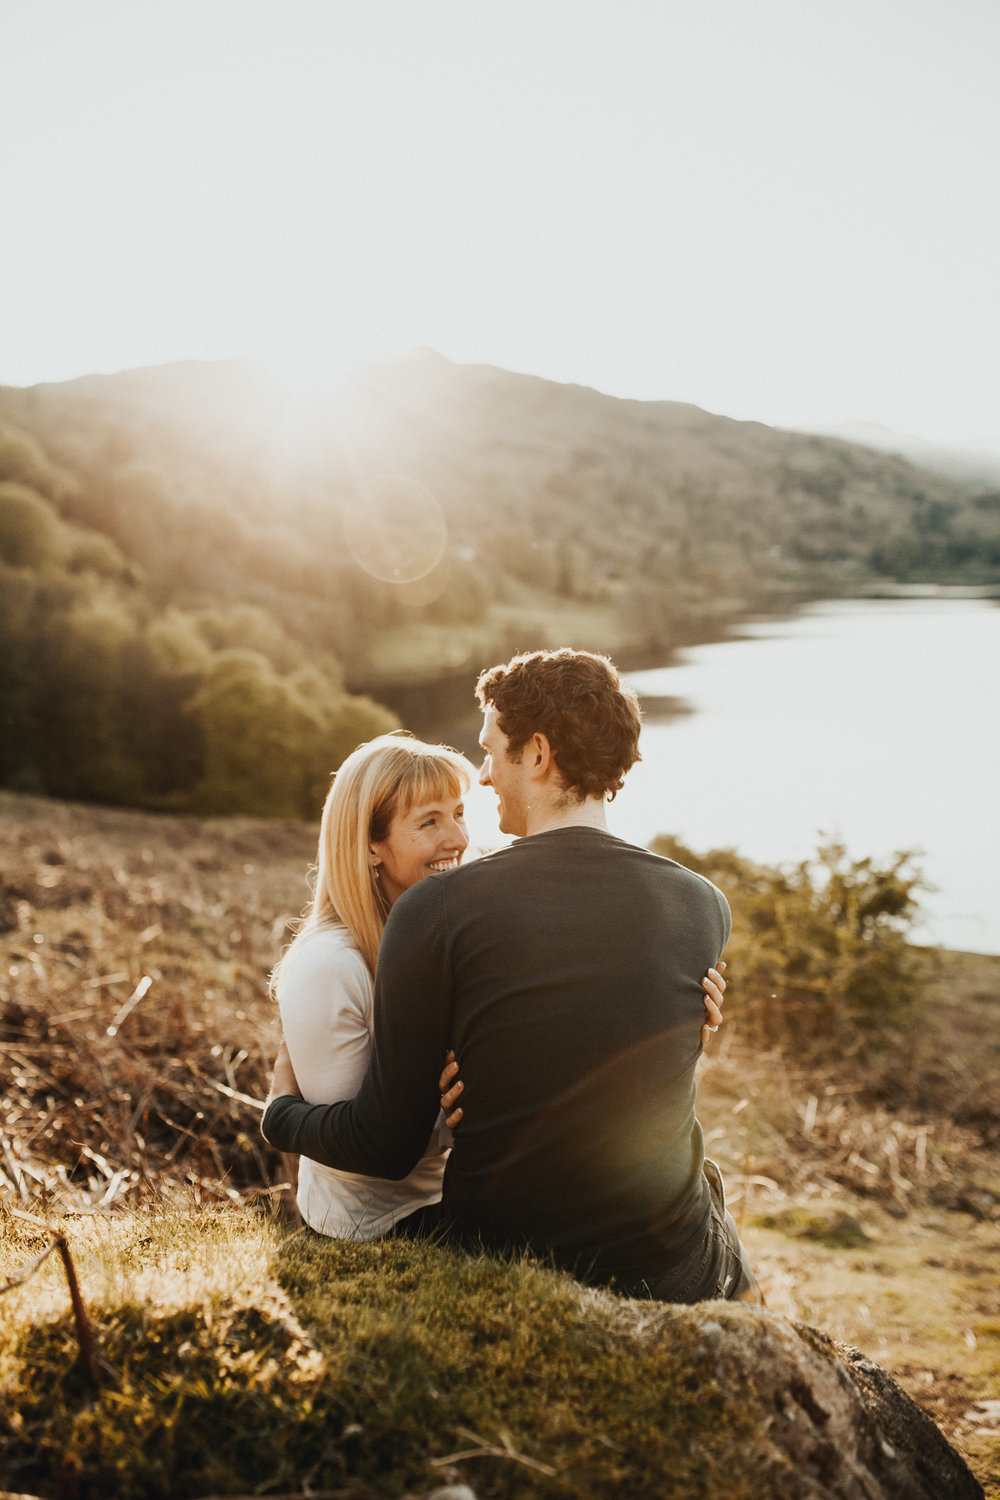 Claire-Clive-Engagement-Shoot-Lake-District-Darina-Stoda-Photography-108.jpg